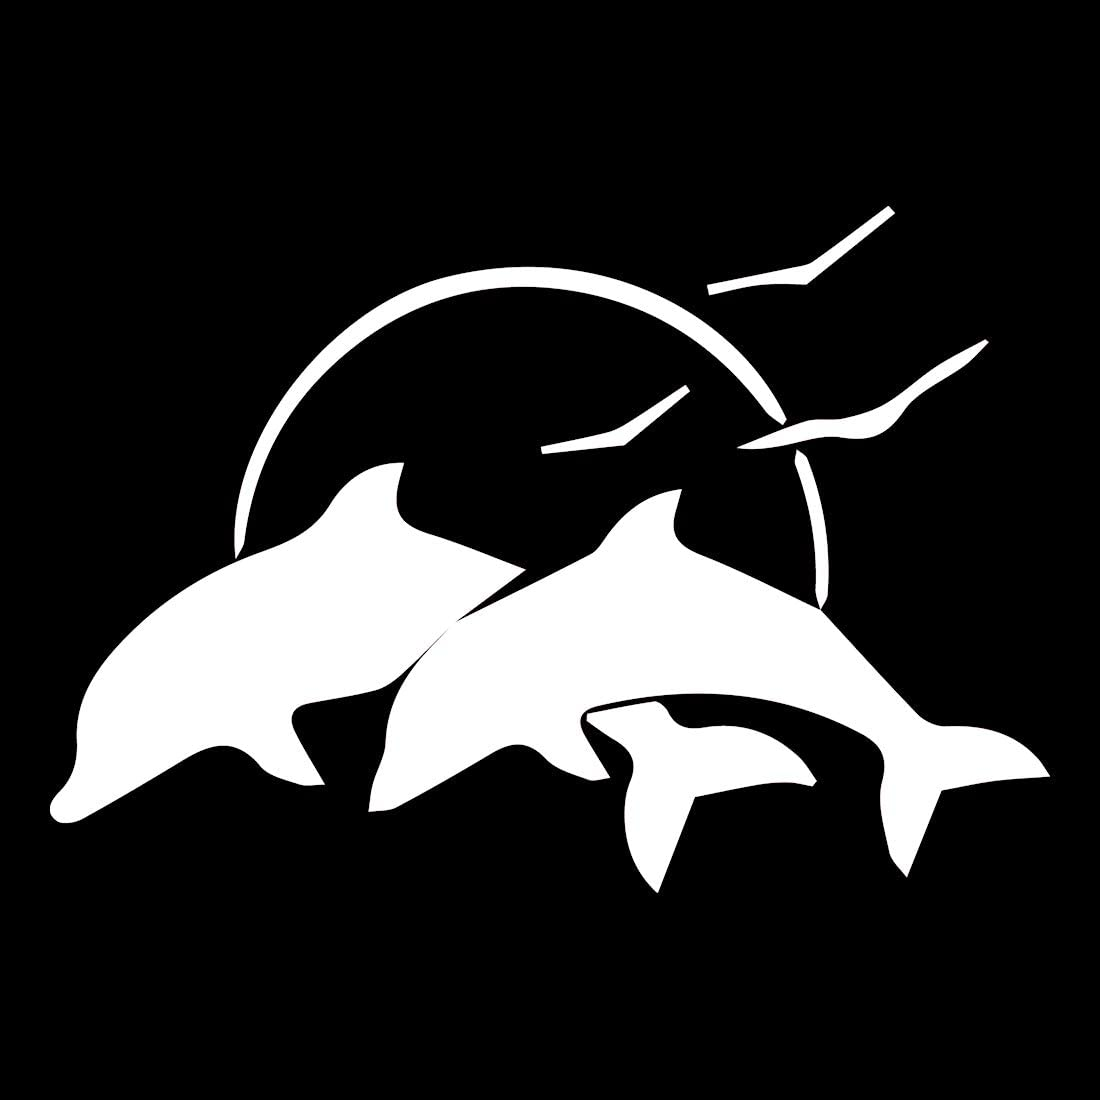 NBFU DECALS Dolphins & Seagulls (White) (Set of 2) Premium Waterproof Vinyl Decal Stickers for Laptop Phone Accessory Helmet Car Window Bumper Mug Tuber Cup Door Wall Decoration